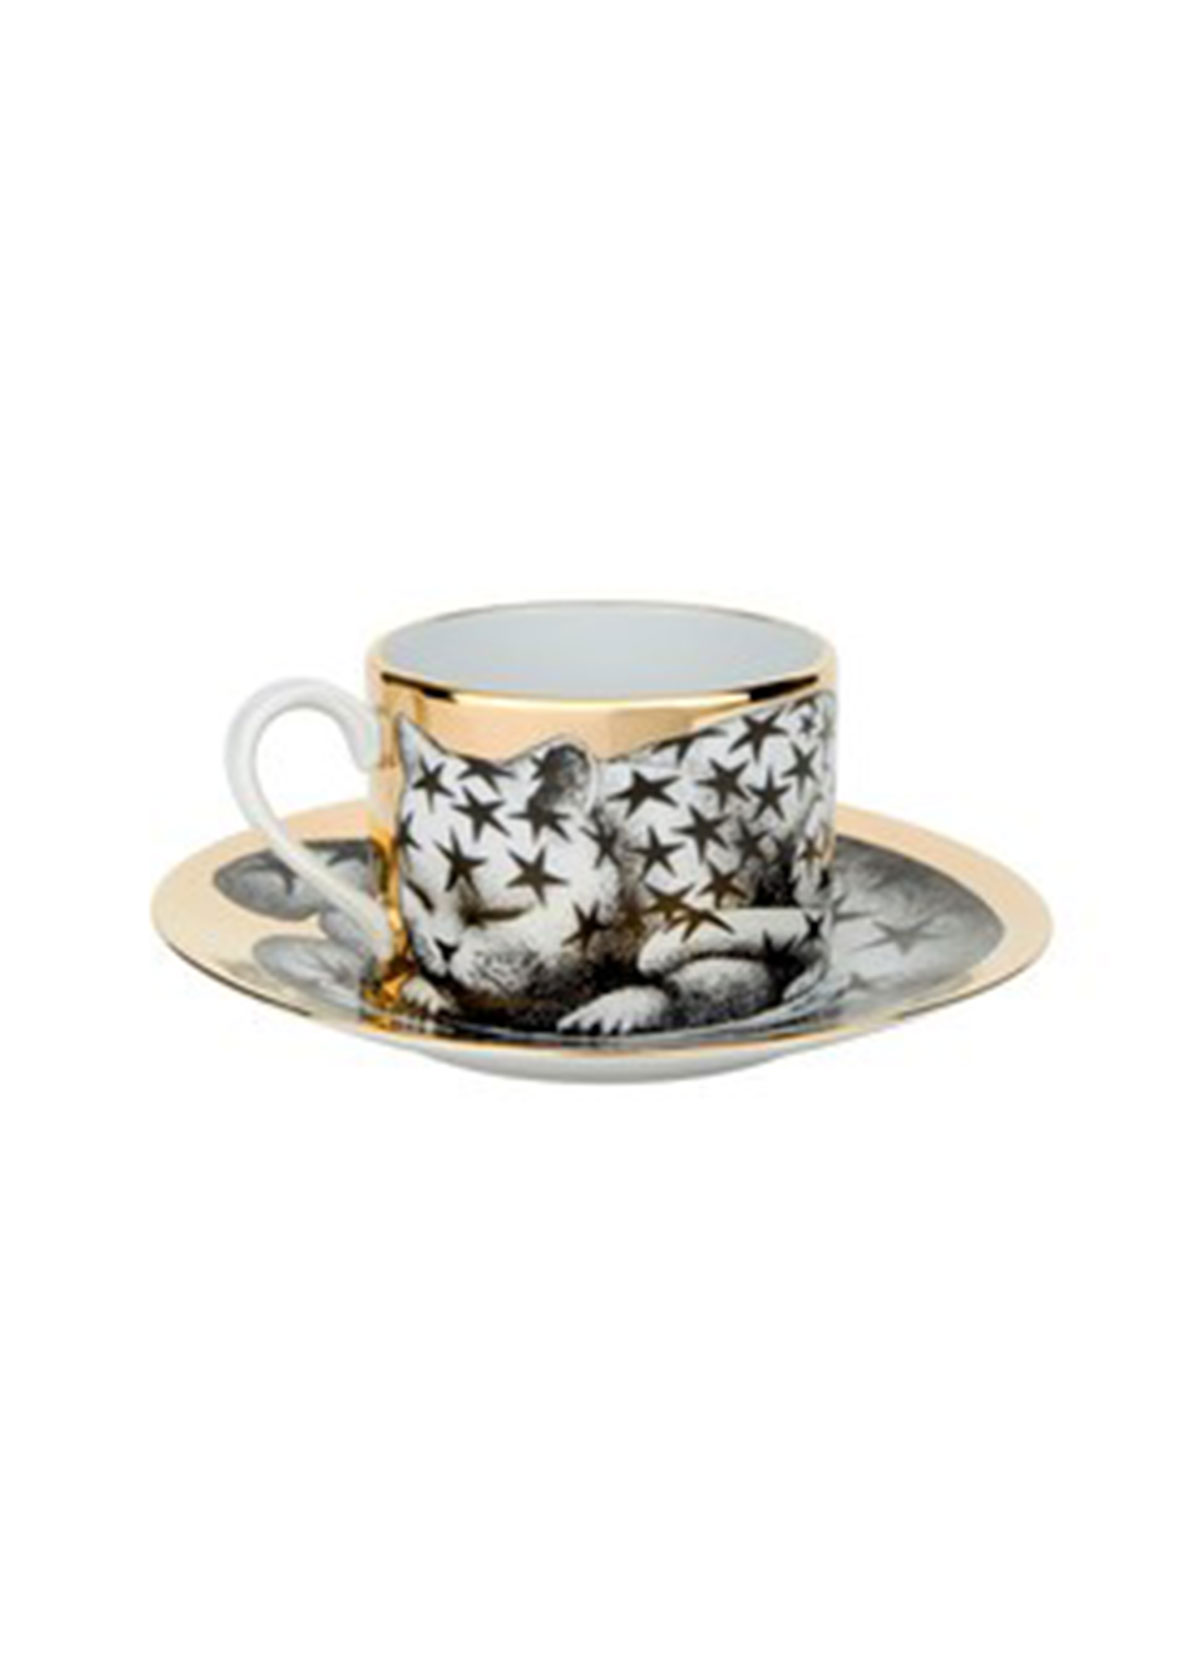 Fornasetti TEA CUP HIGH FIDELITY STELLATO STARRY CAT